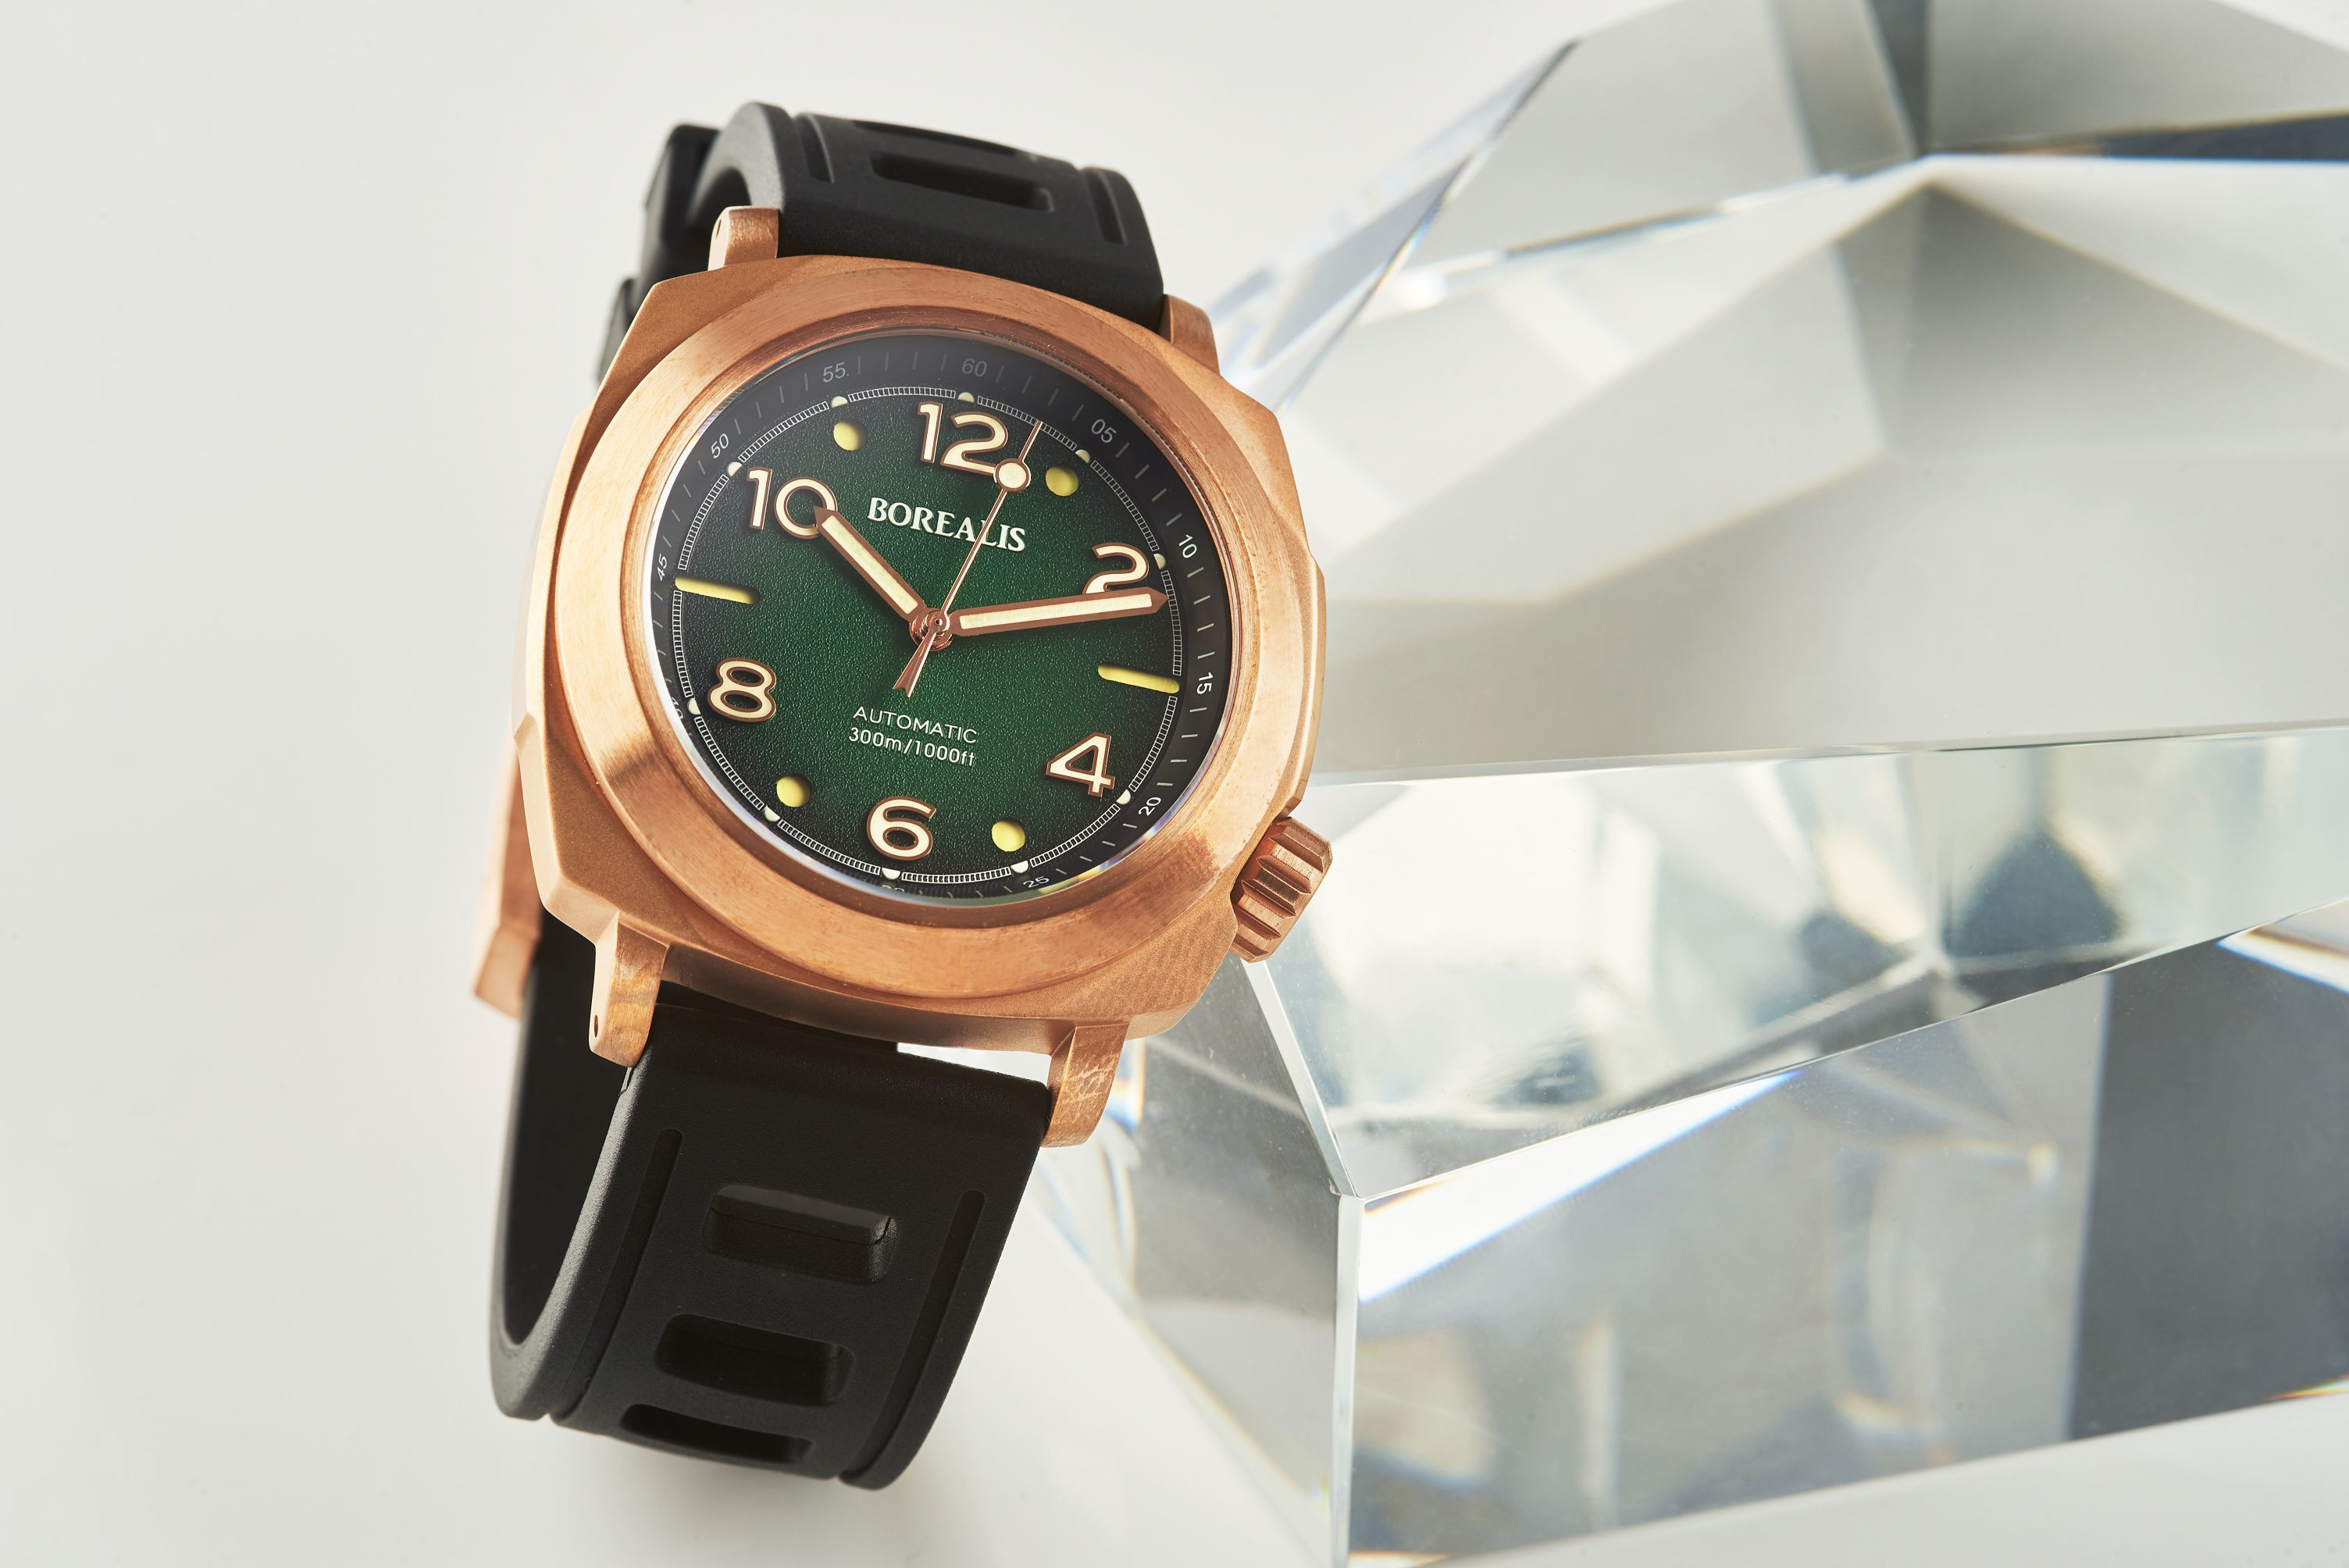 Borealis Navale CuSn8 Bronze 300m Diver Watch Miyota 9015 Fumed Green Version FF Fixed Bezel